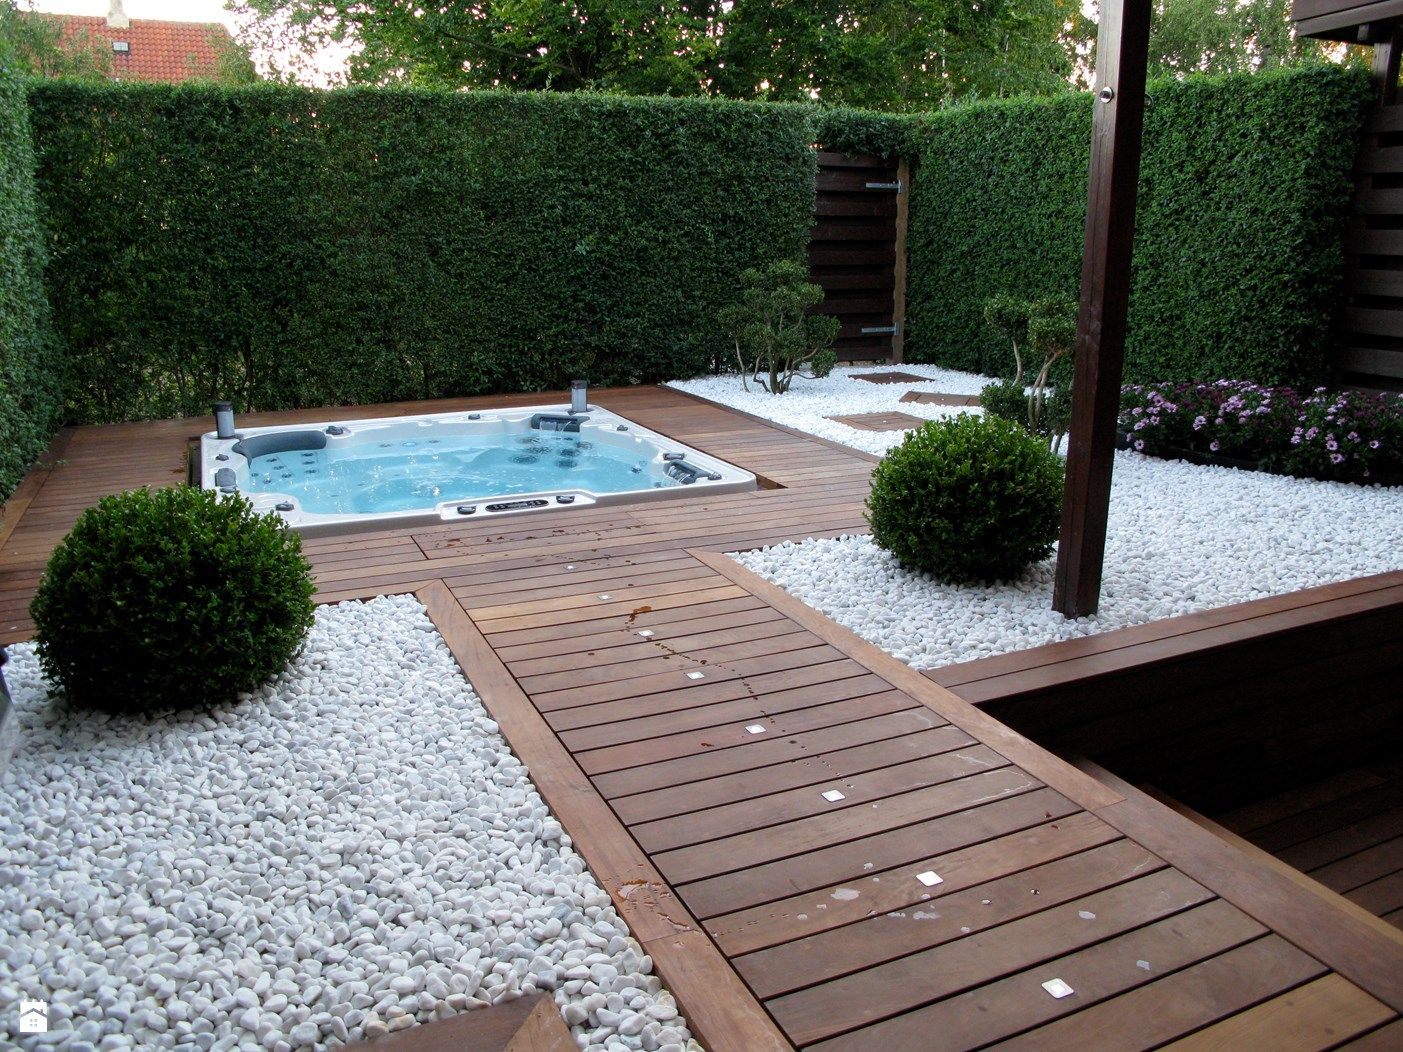 Poolabdeckung Holzdeck Minibasen Spa Hydropool Model H 775 Zdjęcie Od Meadow Group